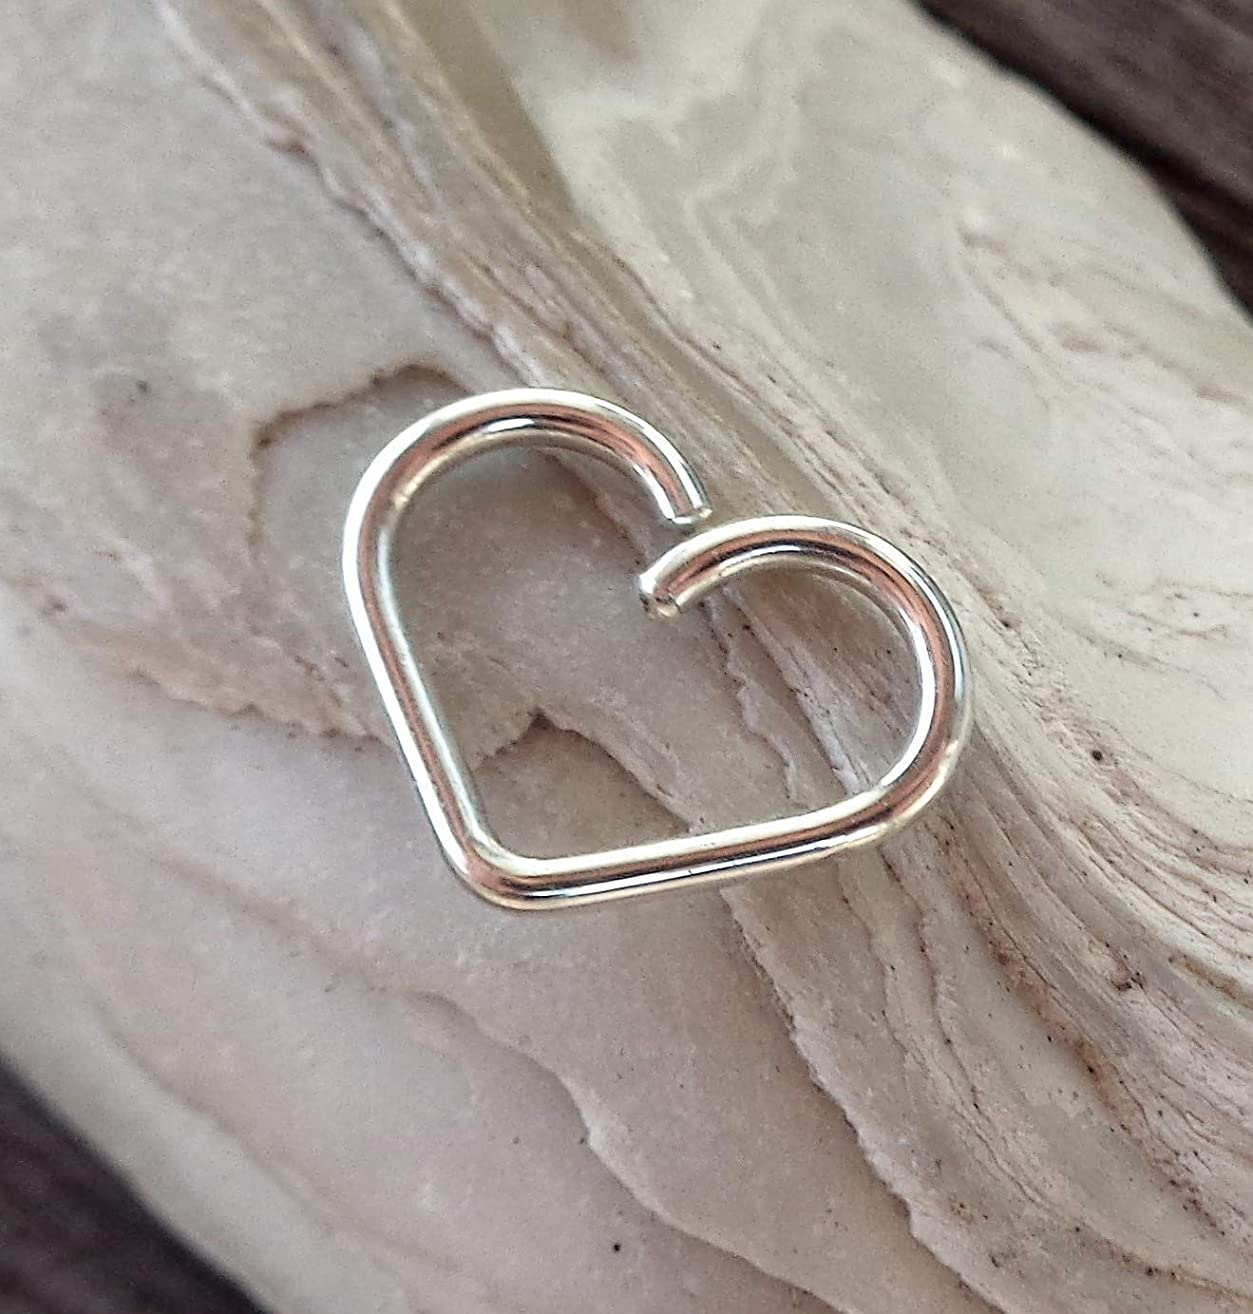 14K Solid? White Gold?Heart Daith piercing ring,cartilage,helix,tragus,ear hoop earring